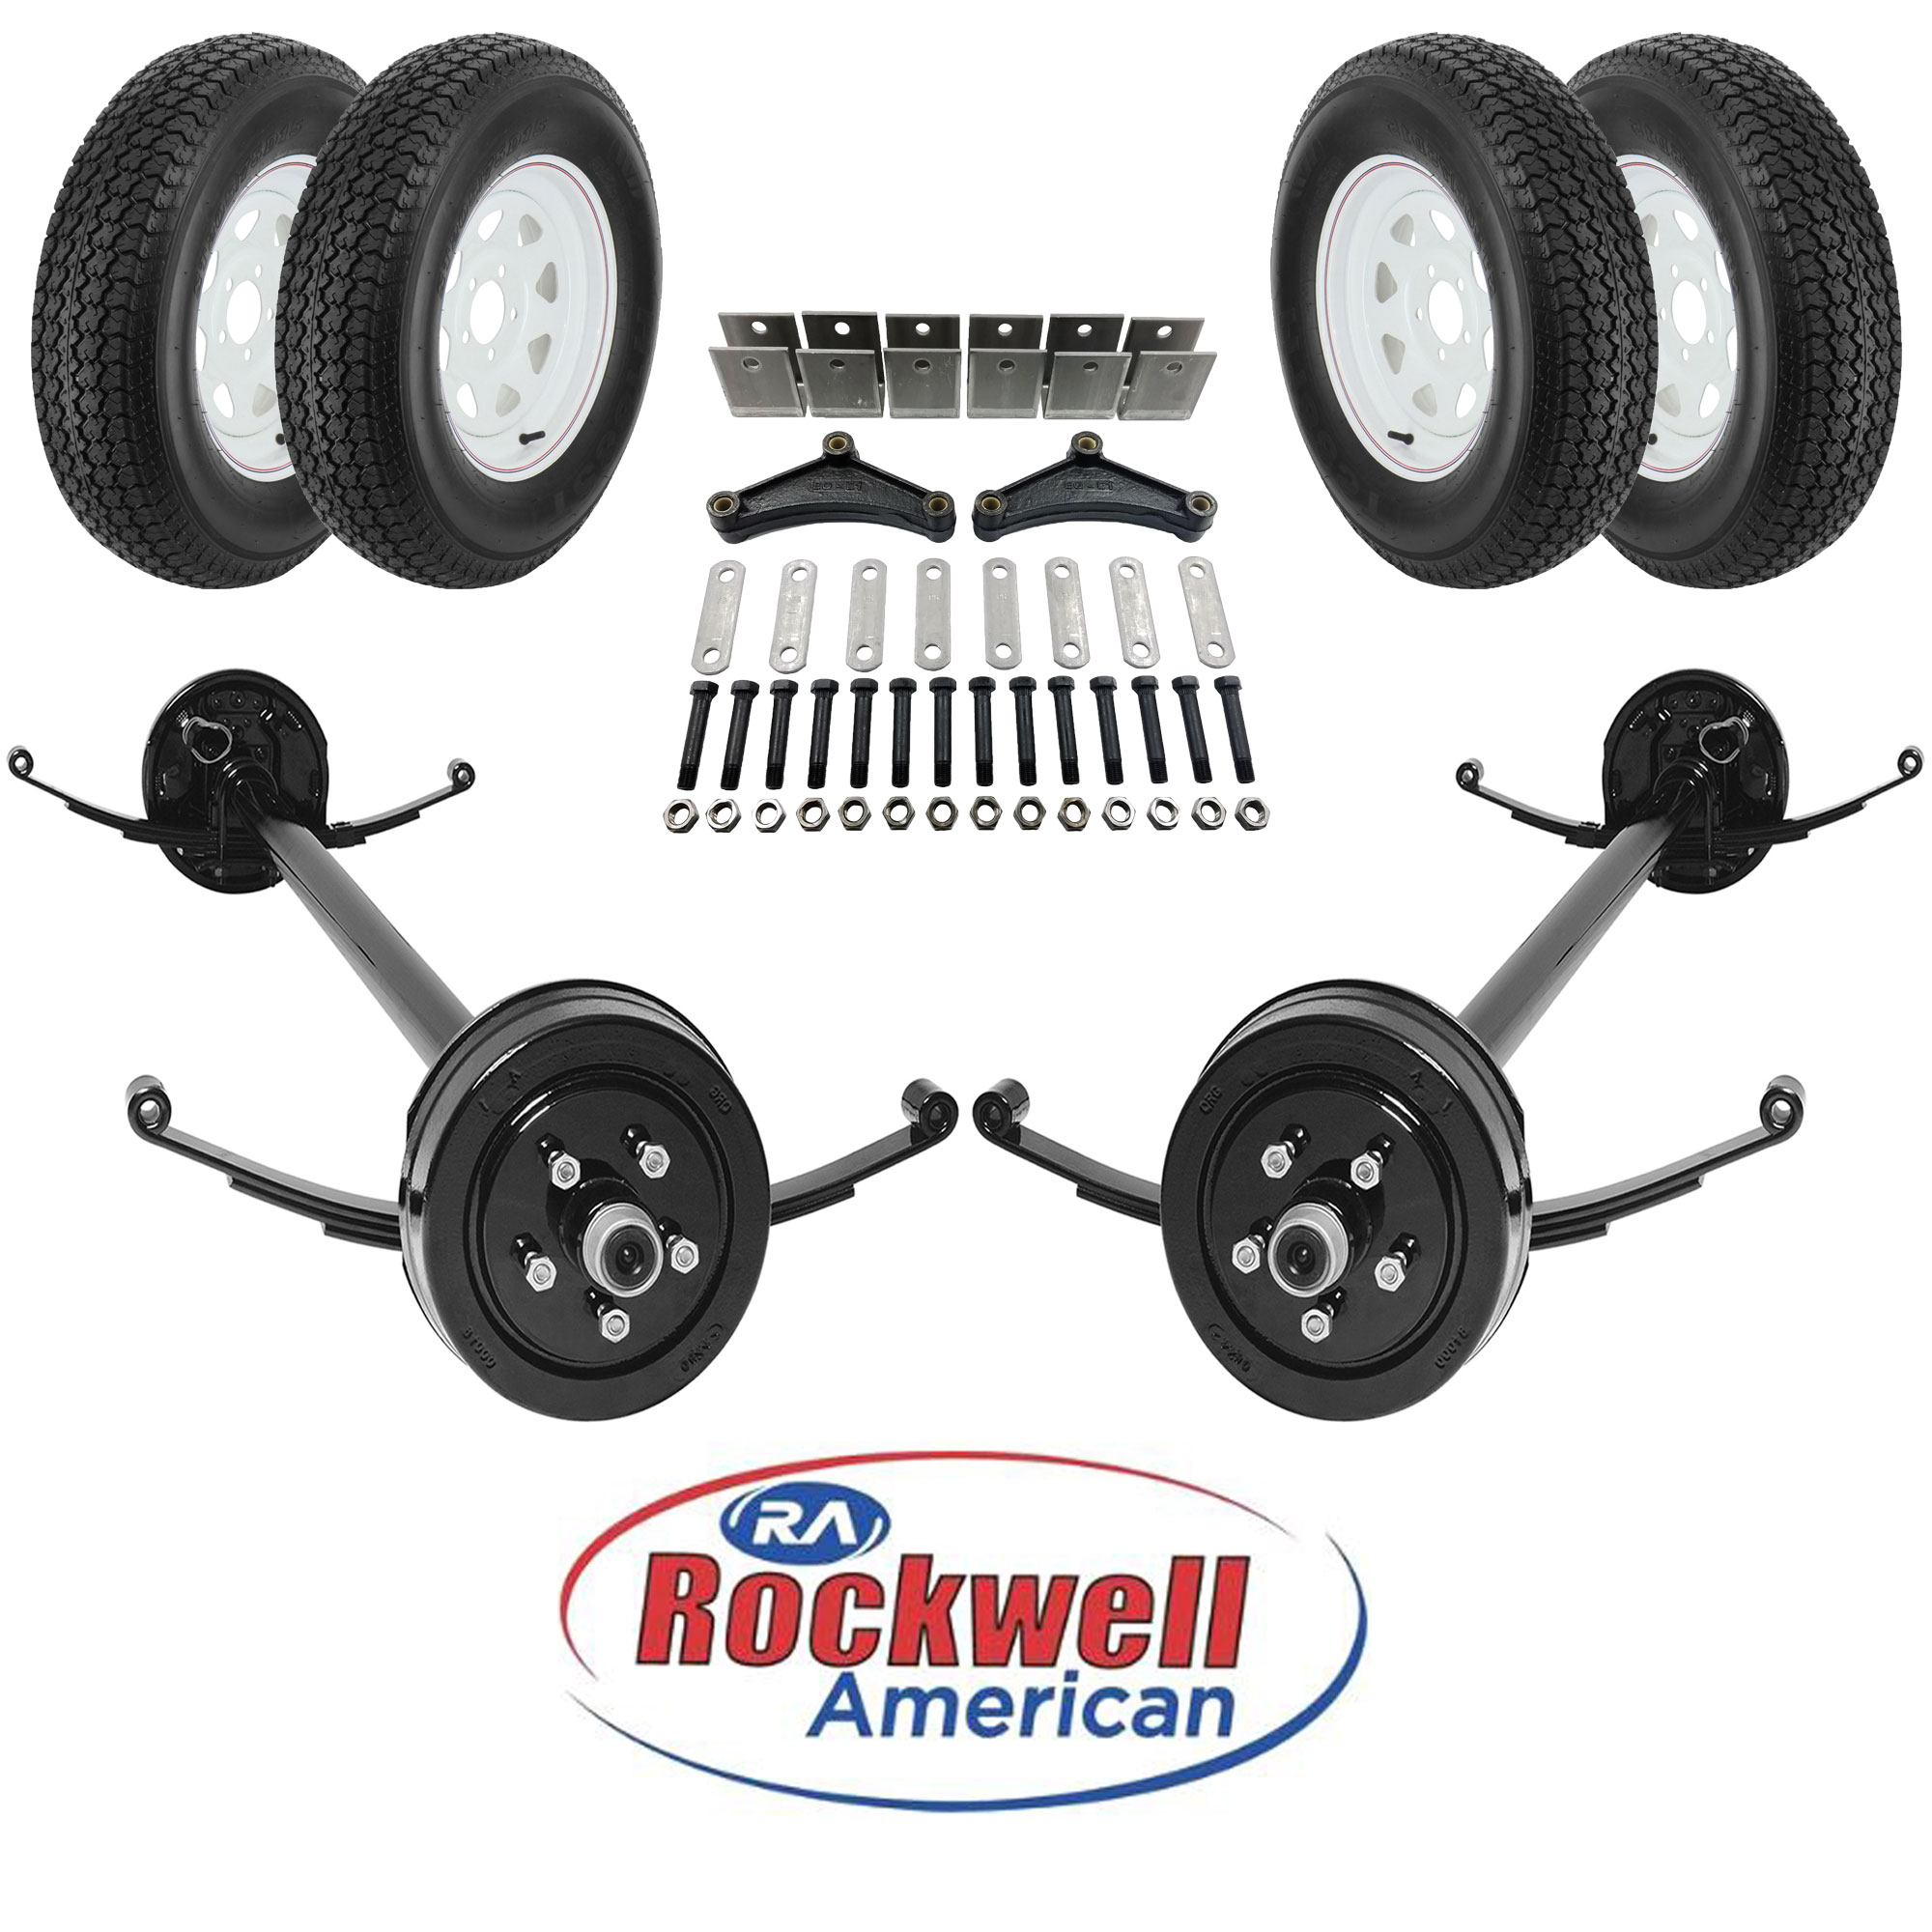 Tandem 3,500 lb Axle Running Gear Set with Wheels and Tires